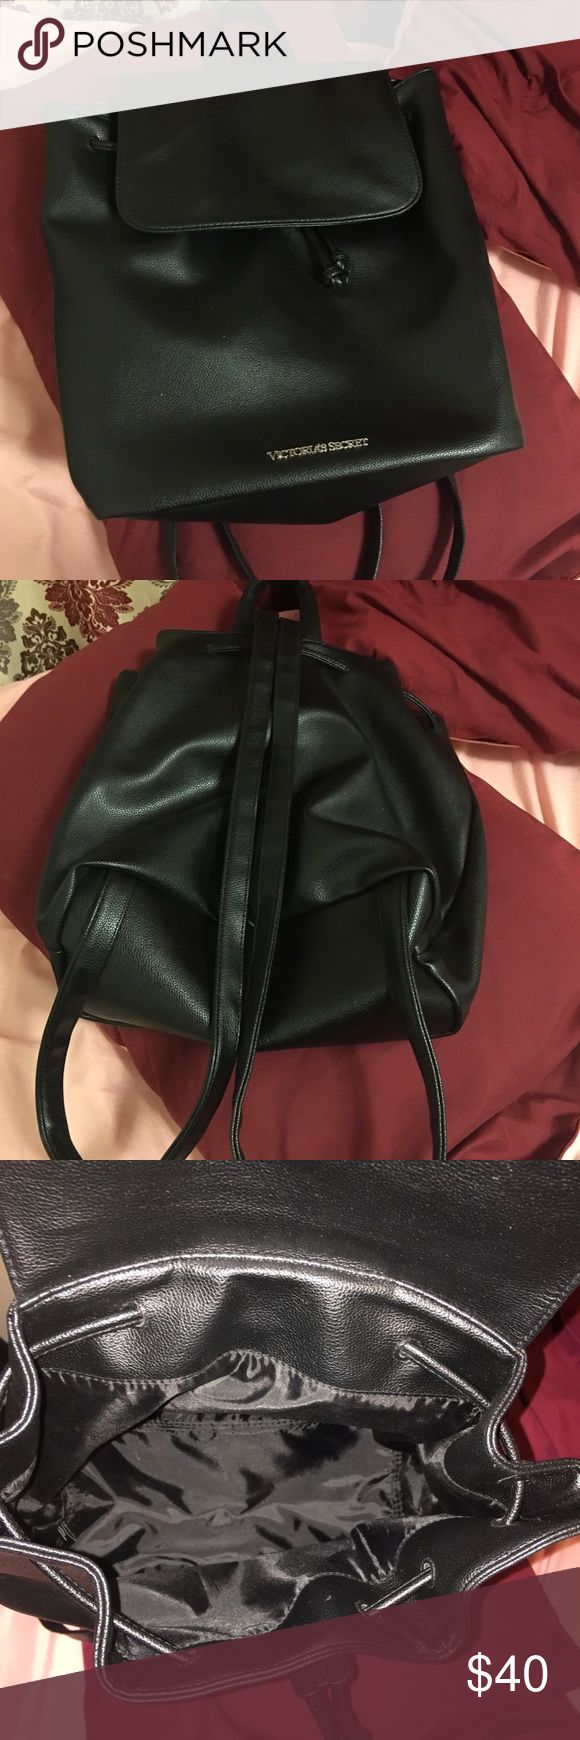 """SALE Victoria's Secret black leather backpack Absolutely gorgeous- used only once. Fits my 13"""" MacBook pro and a few other things. No stains, marks or any signs of wear. Victoria's Secret Bags Backpacks"""